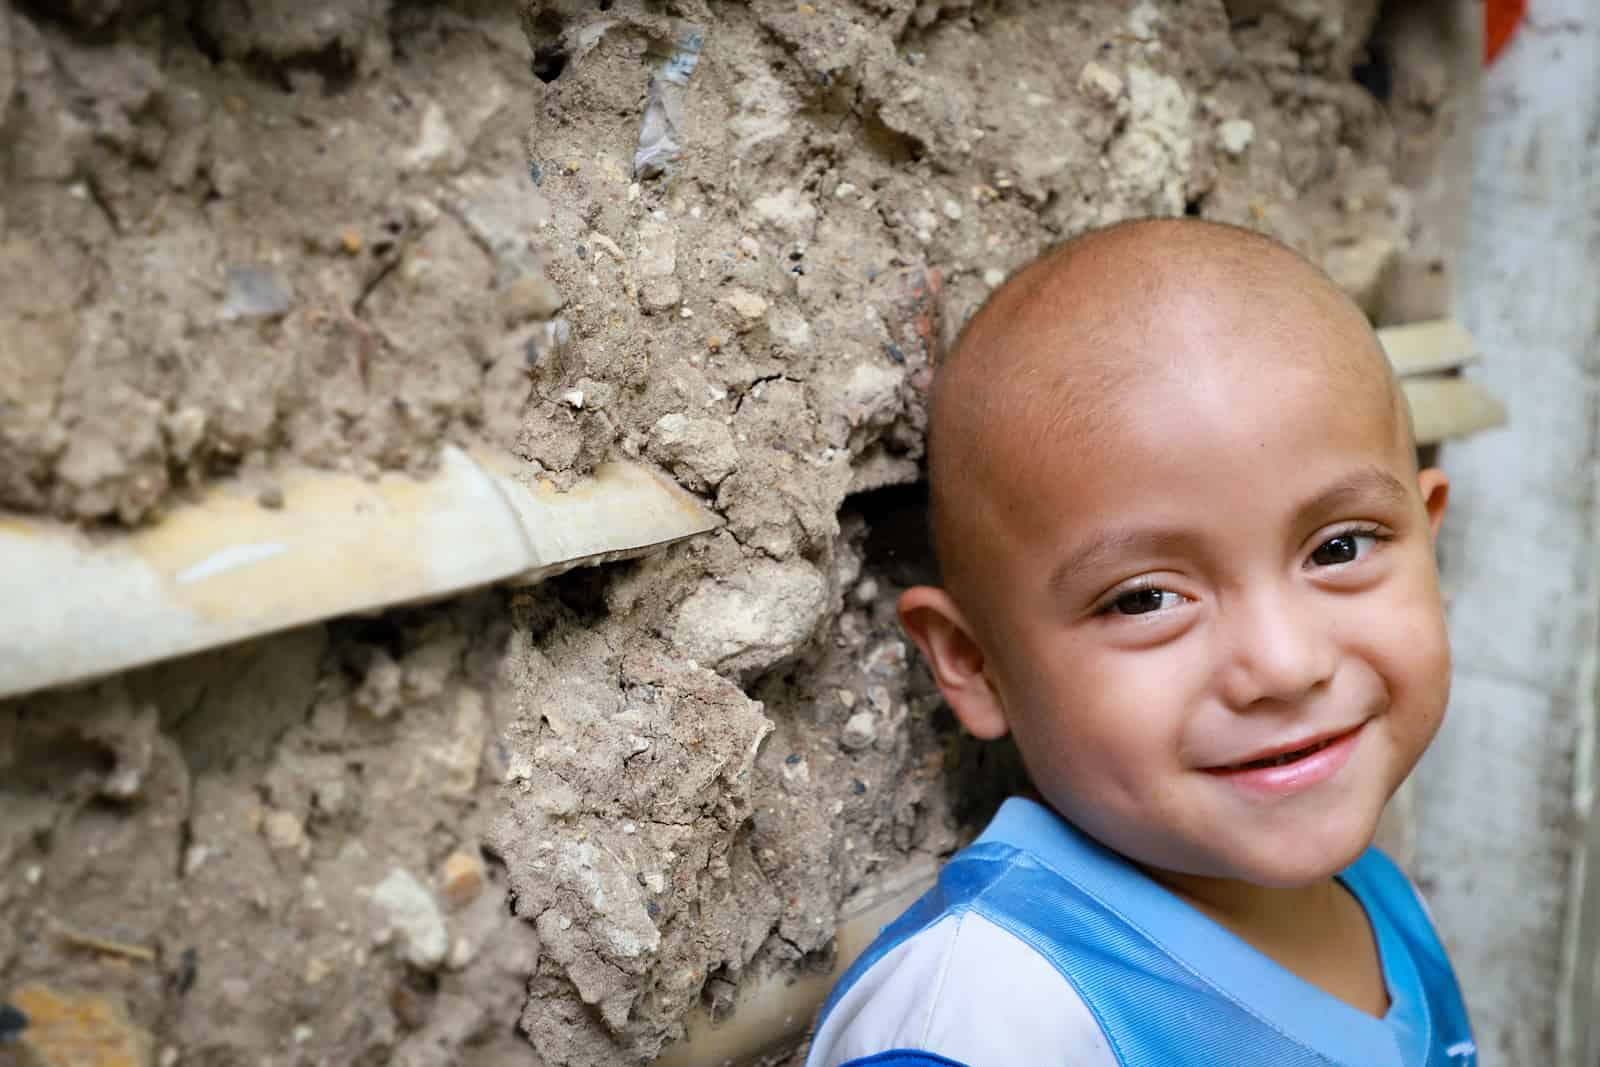 A young boy with no hair leans against a mud wall, smiling.